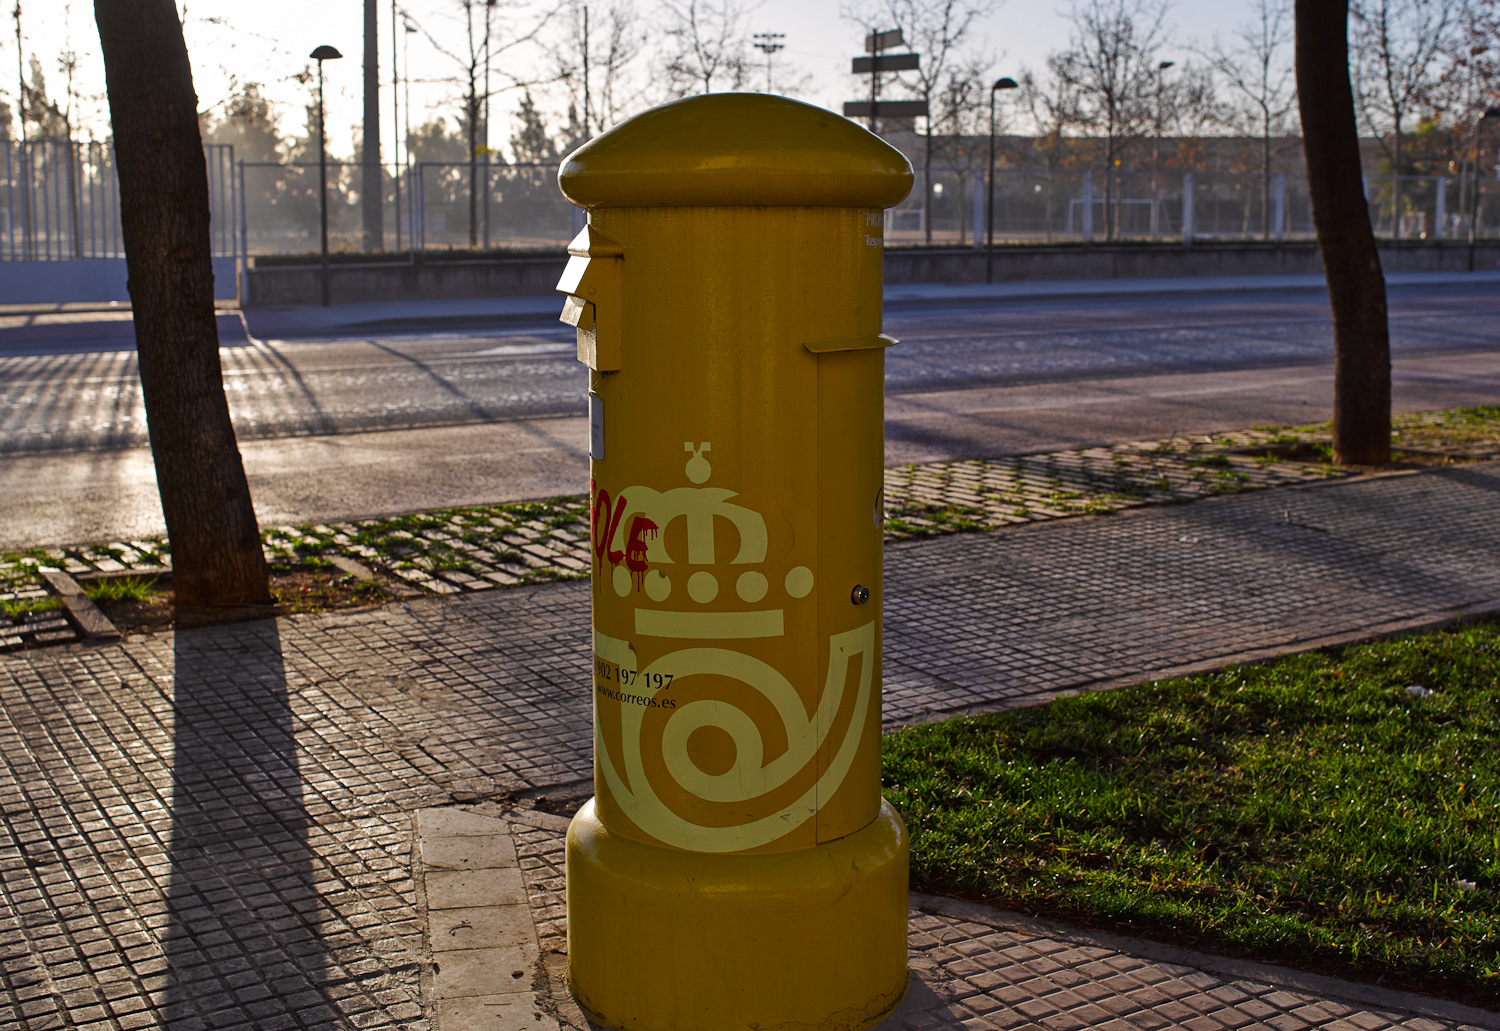 Post Box - Valencia, 2008